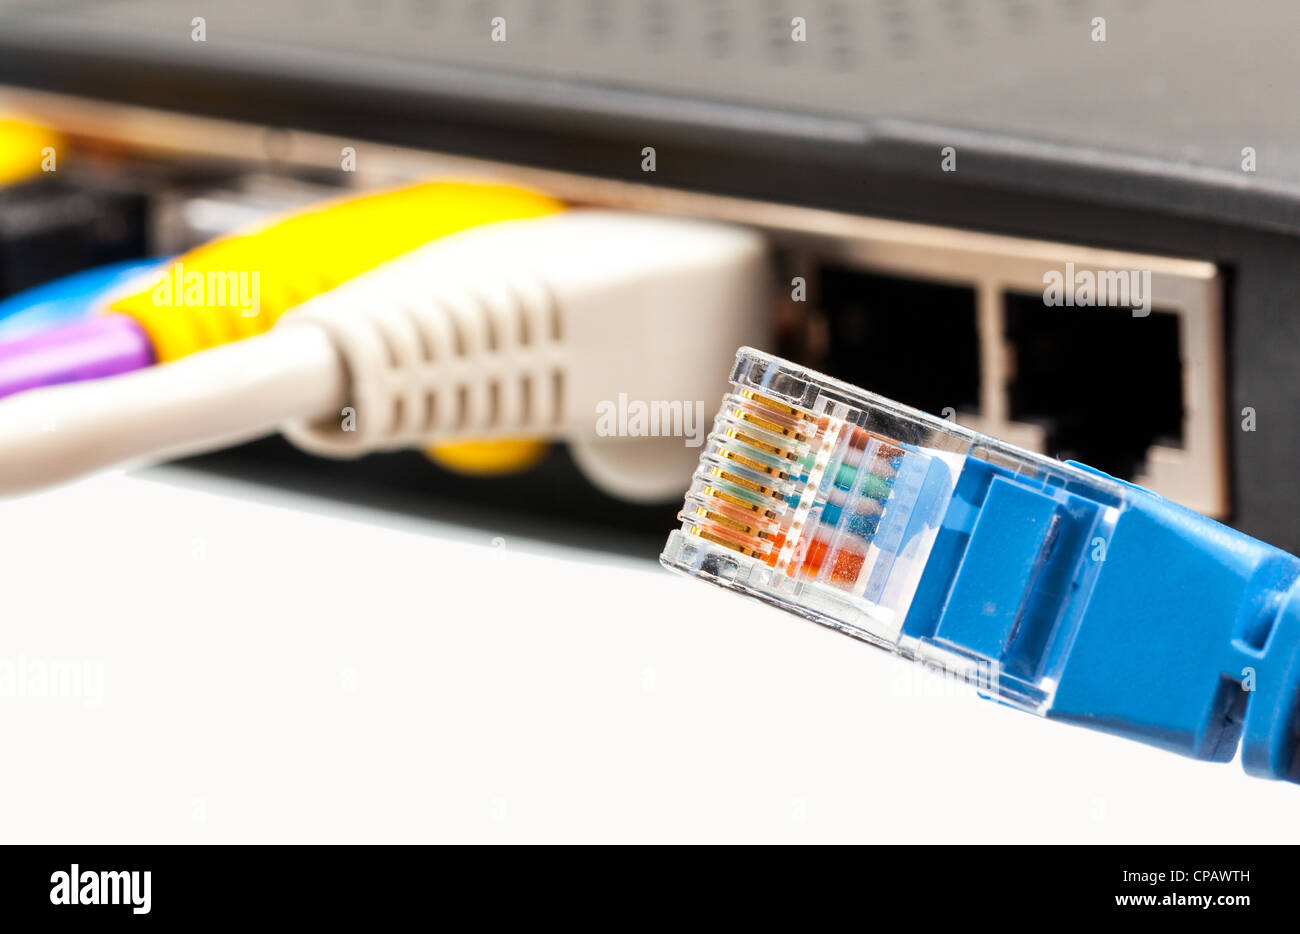 Disconnected Cable Stock Photos Images Cat5 Network And Computer Cables Patch Cat5e Single Blue Loose From Internet Router Or Technology Switch Image